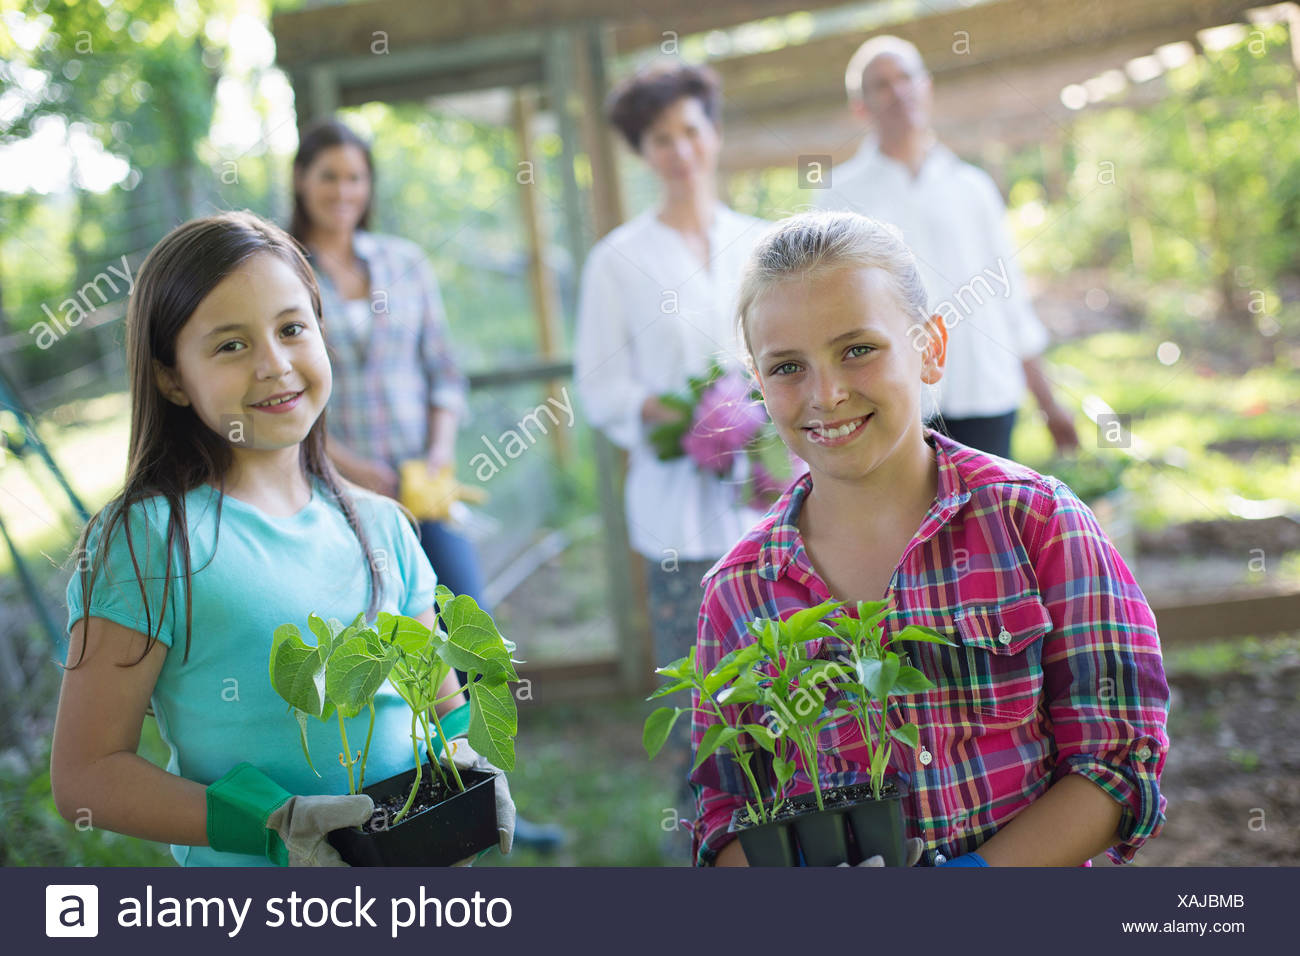 Organic farm. Summer party. Two girls sitting holding young plants, with a mature couple and a young woman looking on. - Stock Image